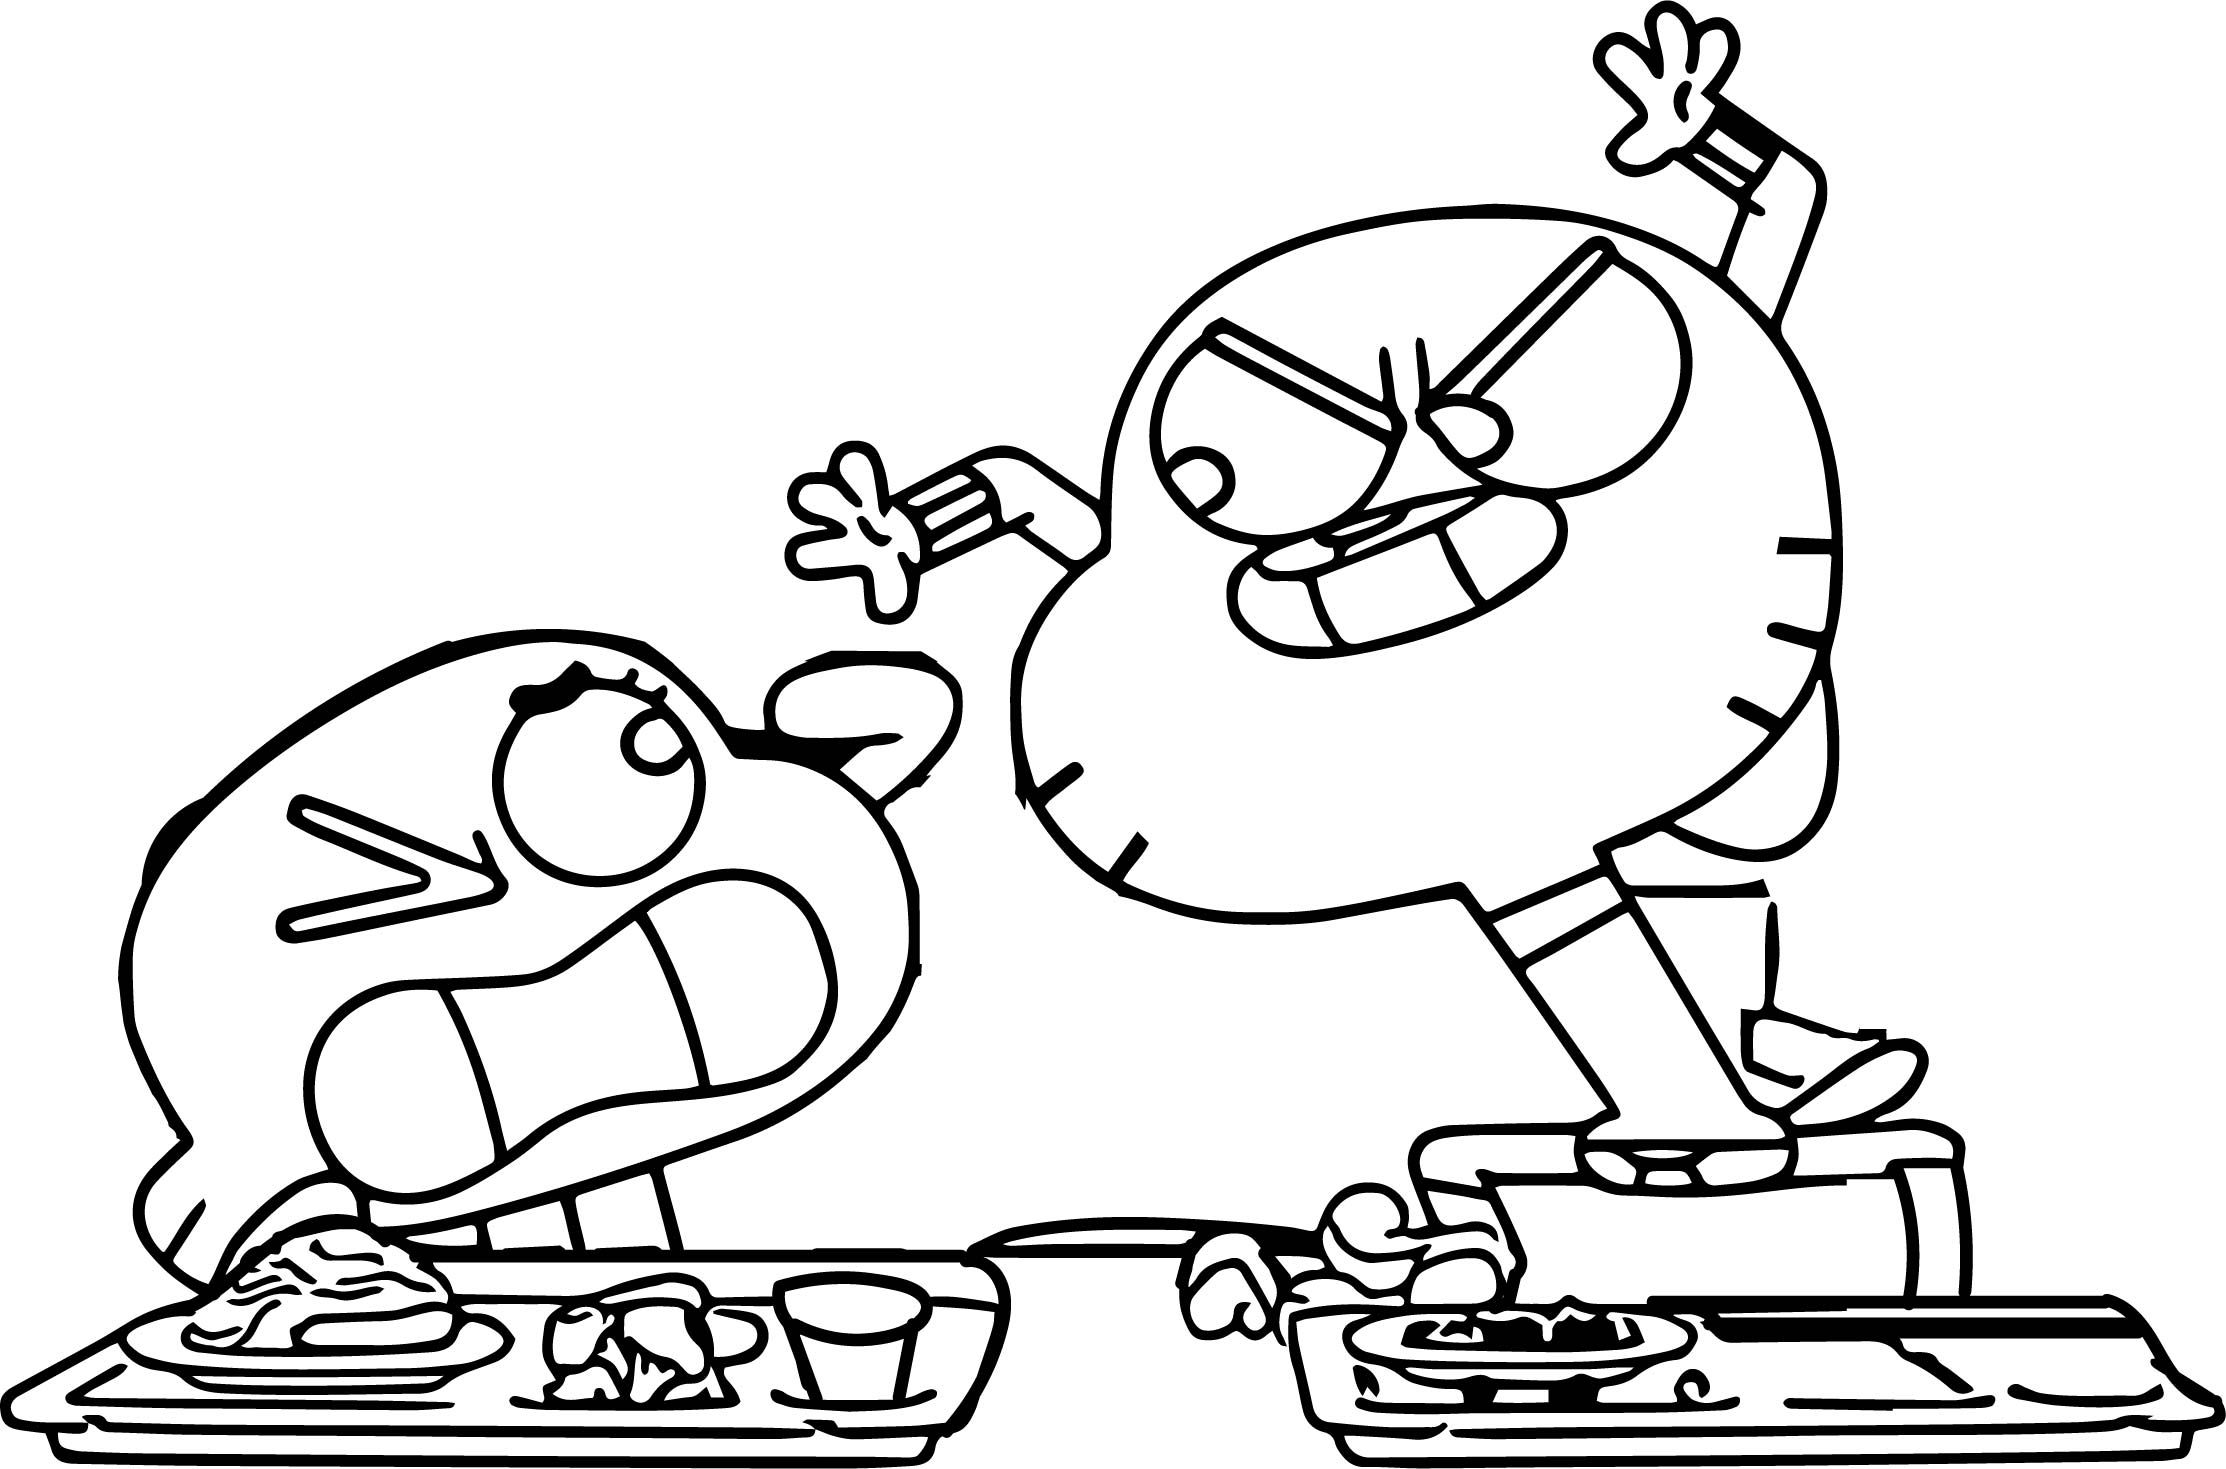 Nice Gumball And Darwin Noo Coloring Page Coloring Pages Cartoon Coloring Pages Free Coloring Pages